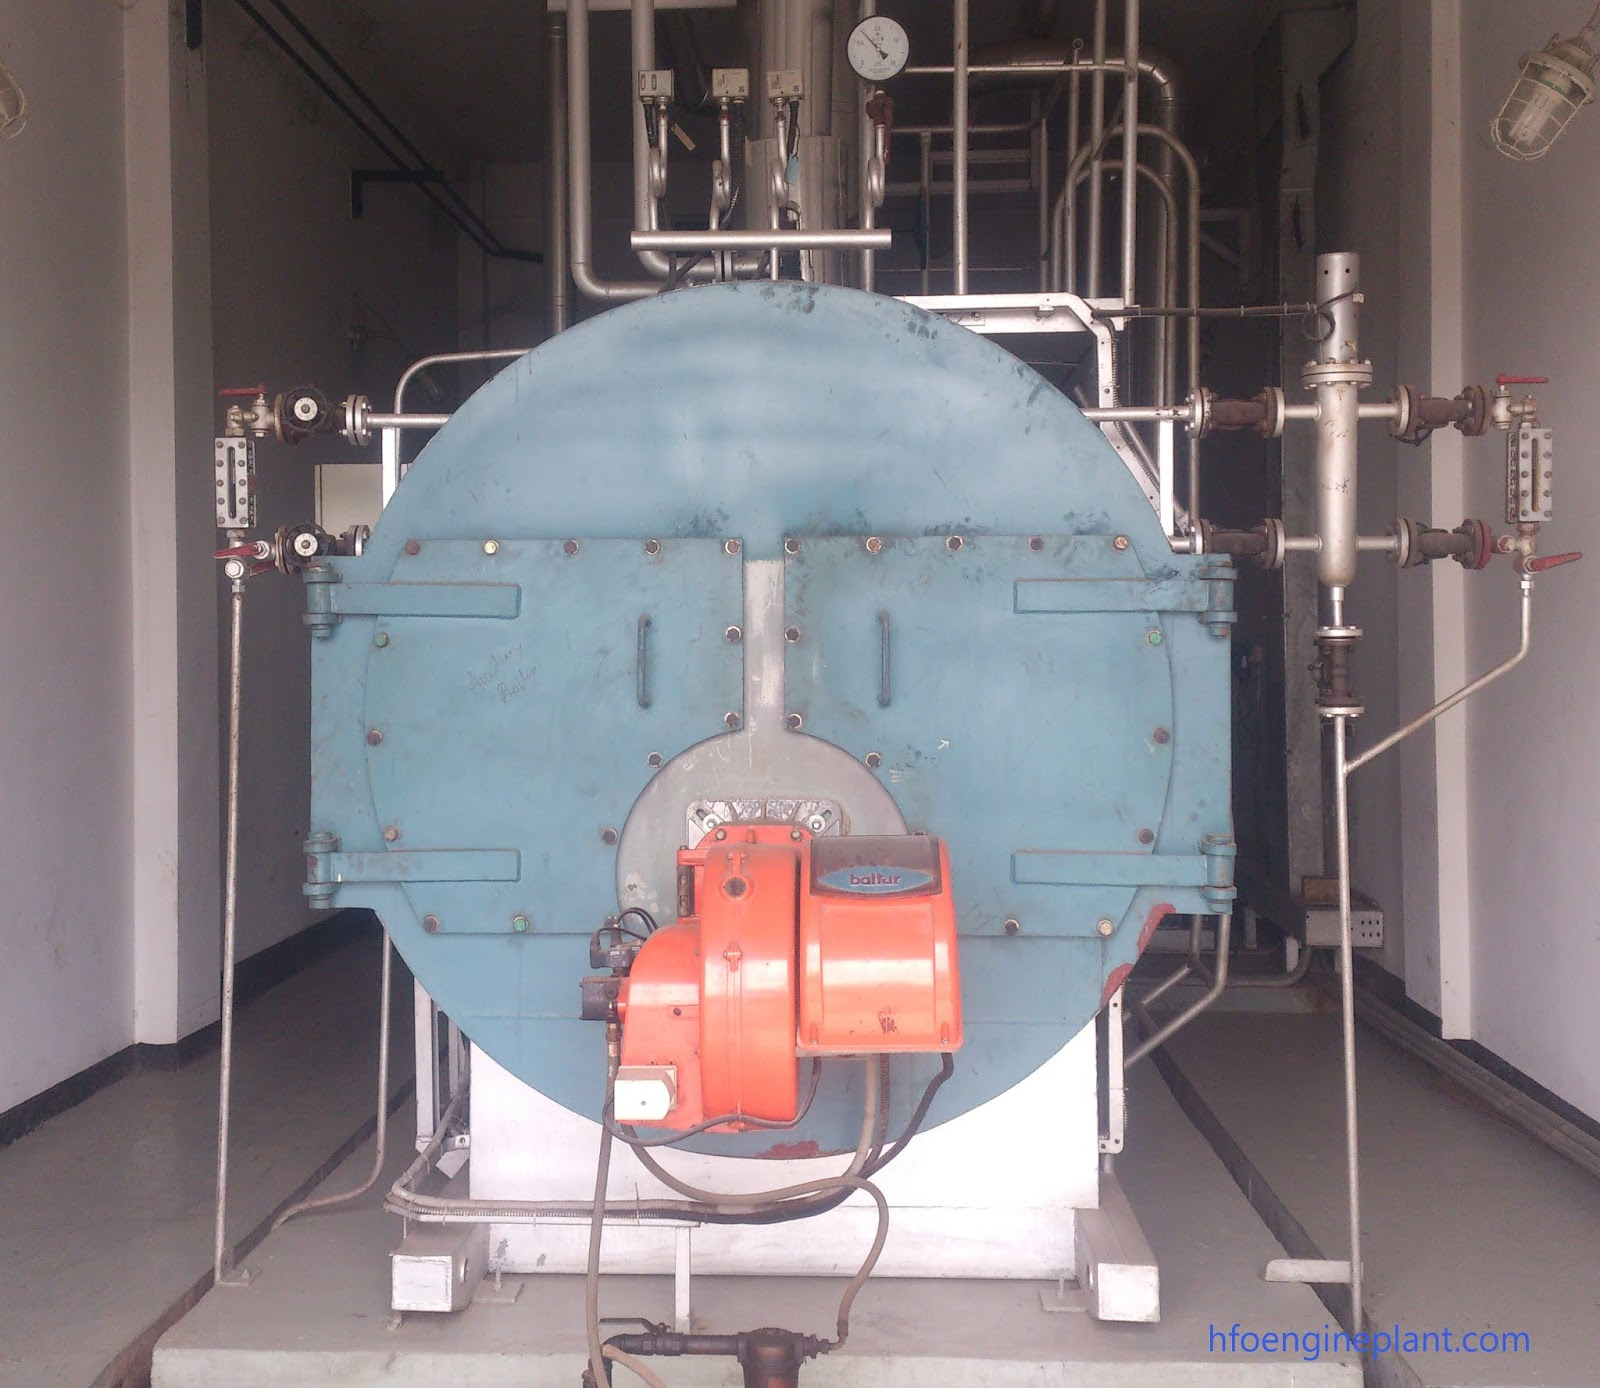 Auxiliary Boiler in HFO Power Plant - HFO POWER PLANT